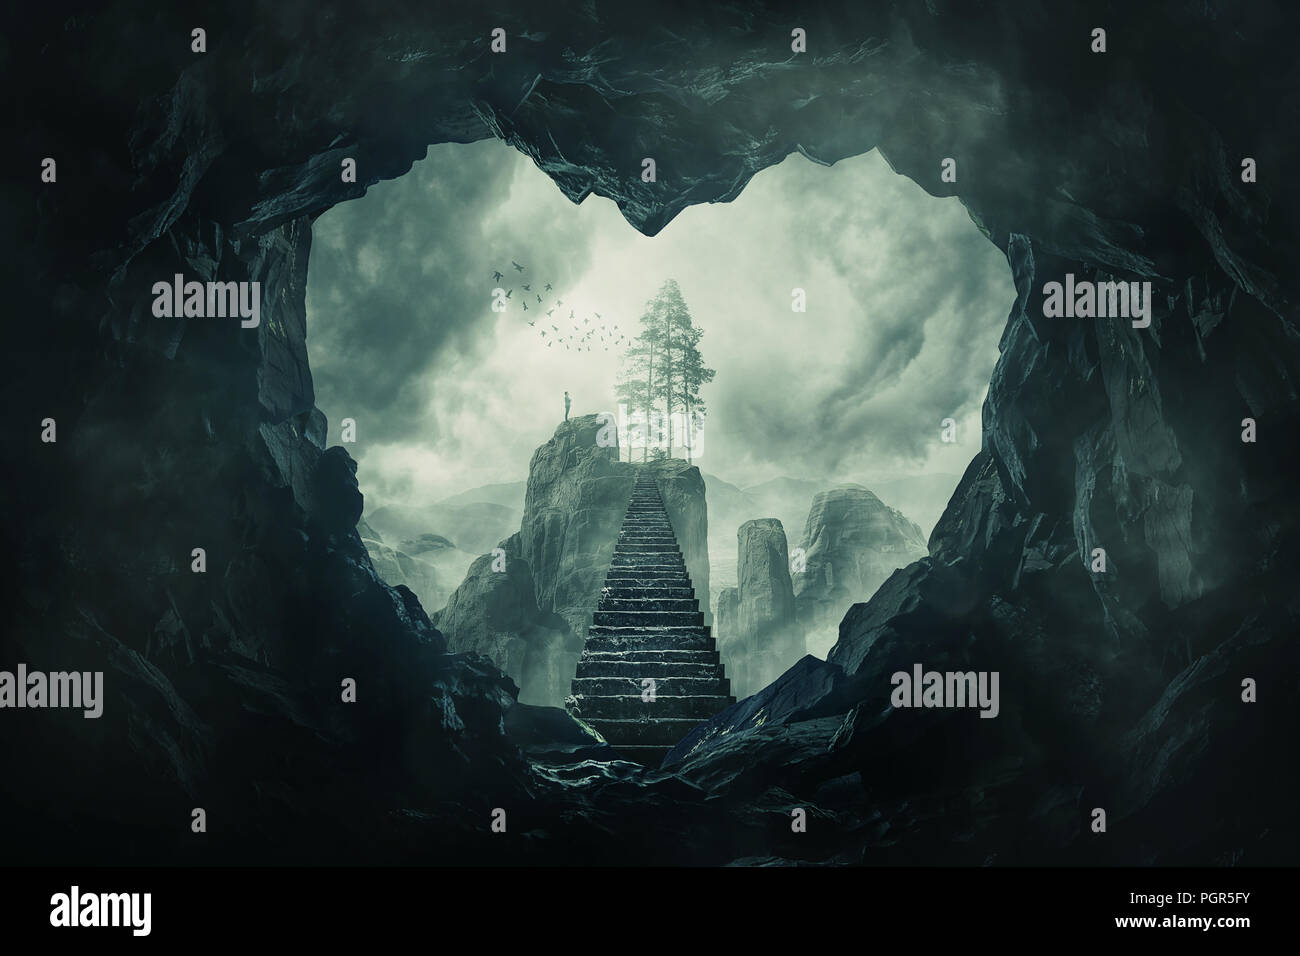 Surreal view heart shaped dark cave exit and mystic stairway crossing the misty abyss going up to unknown paradise. Opportunity staircase to love, way - Stock Image